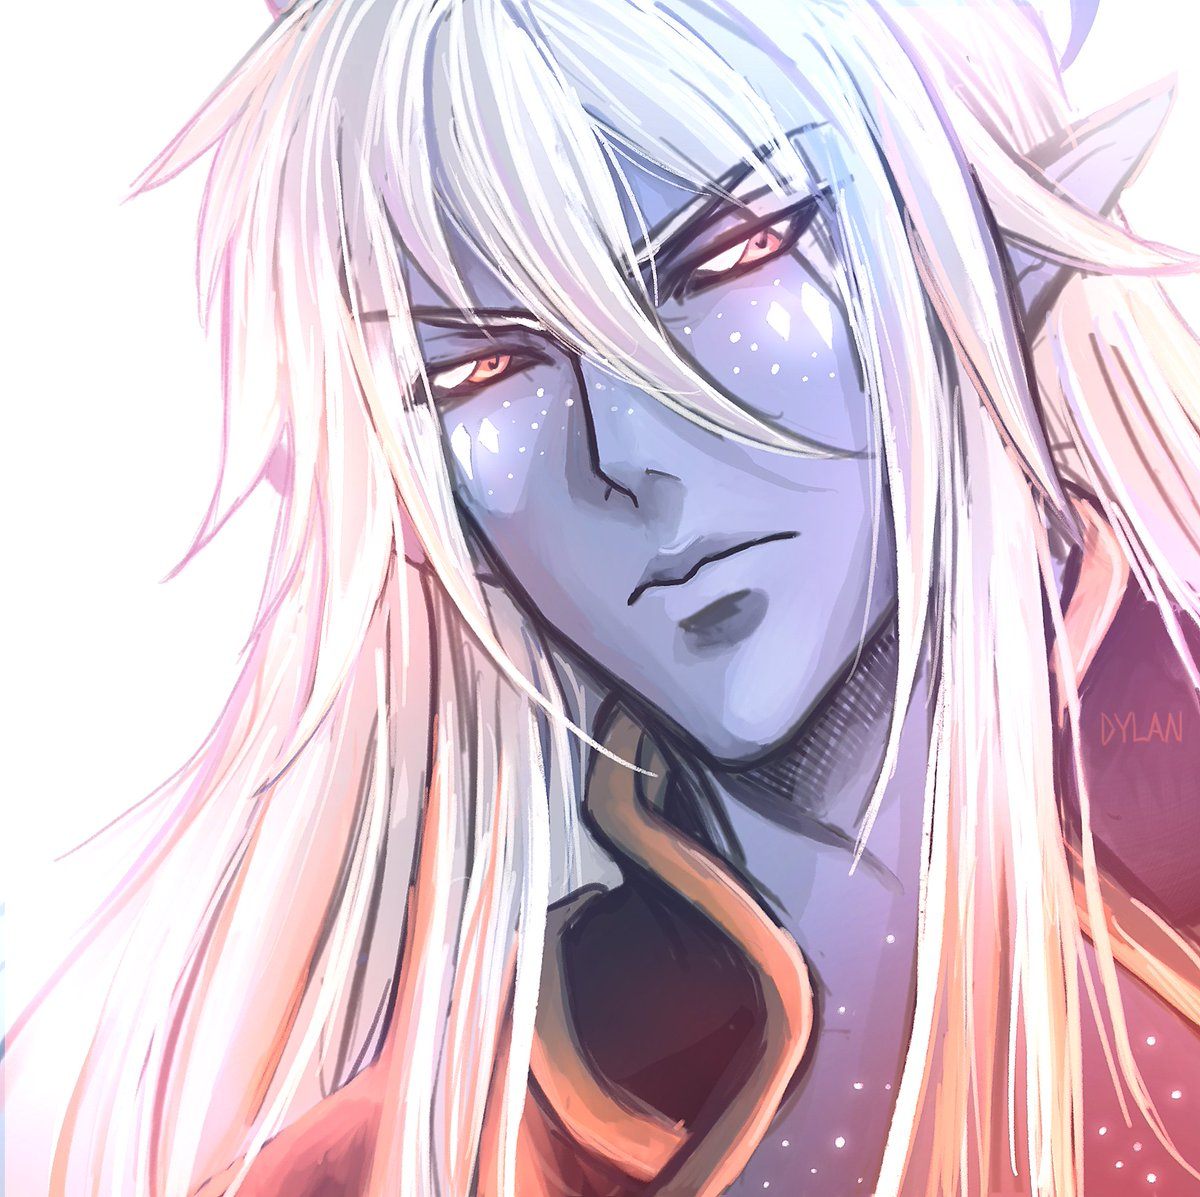 @thedragonprince Happy anniversary! ^___^ Here are a few of my favorite fanarts I have drawn. Haha only Aaravos. Sorry but I love him. 💜 #Aaravos #TDP #tdpart #HappyAnniversary